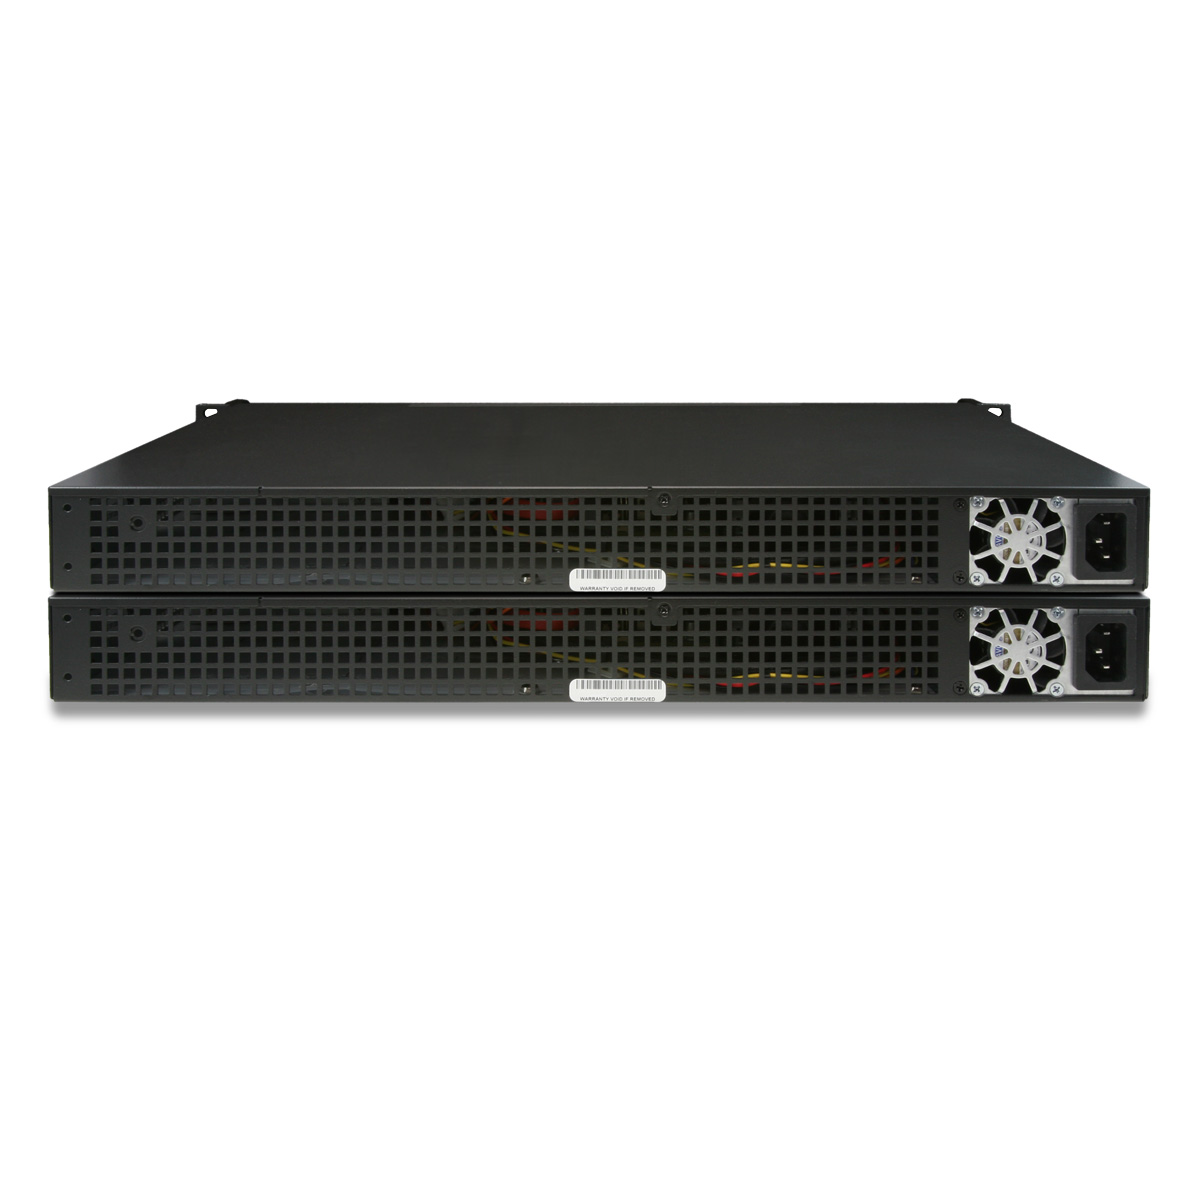 XG-1541 High Availability